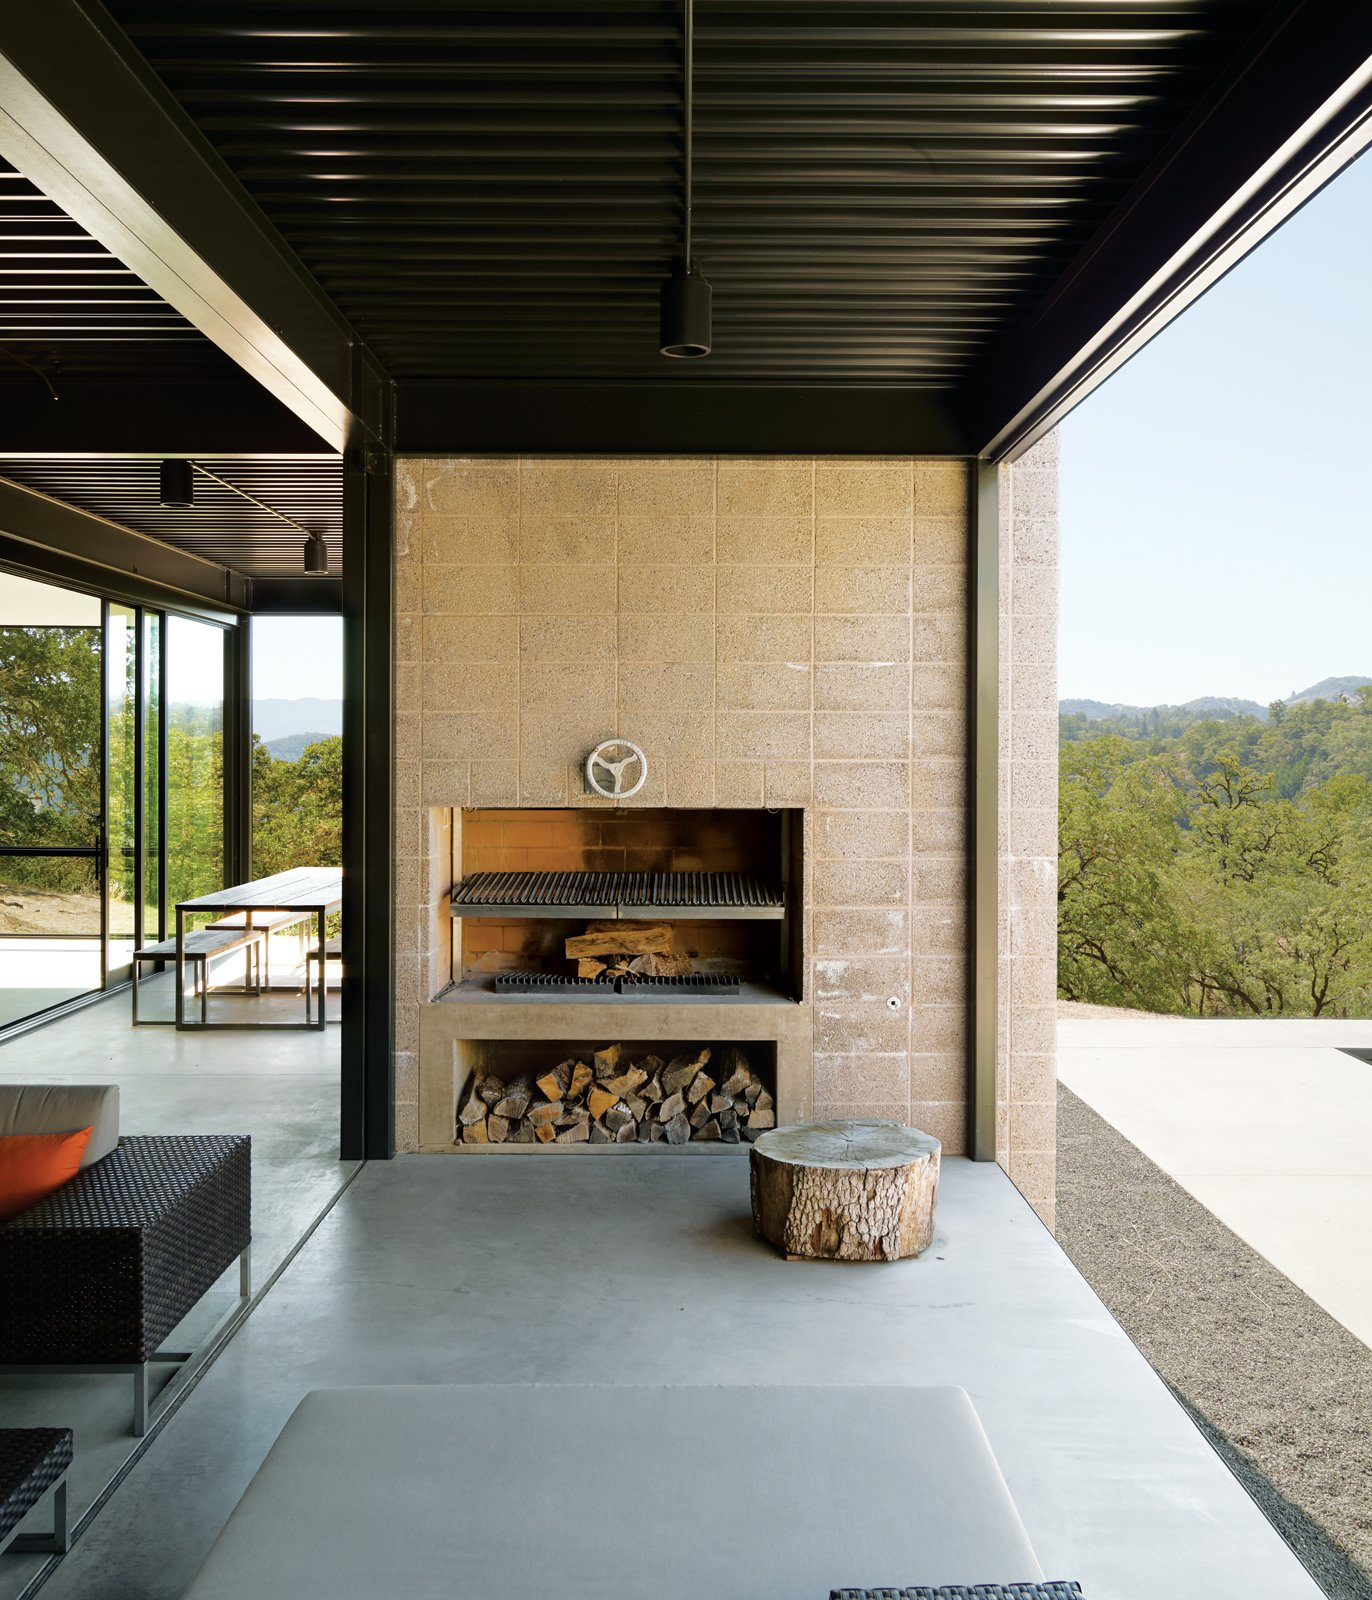 Passionate cooks, the Burtons installed a Mugnaini wood-fired oven in their kitchen and had a custom Grillery fireplace-barbecue built into the concrete block wall on their deck. Beneath the grill they store oak firewood collected from their property.  97+ Modern Fireplace Ideas from A Simple Plan